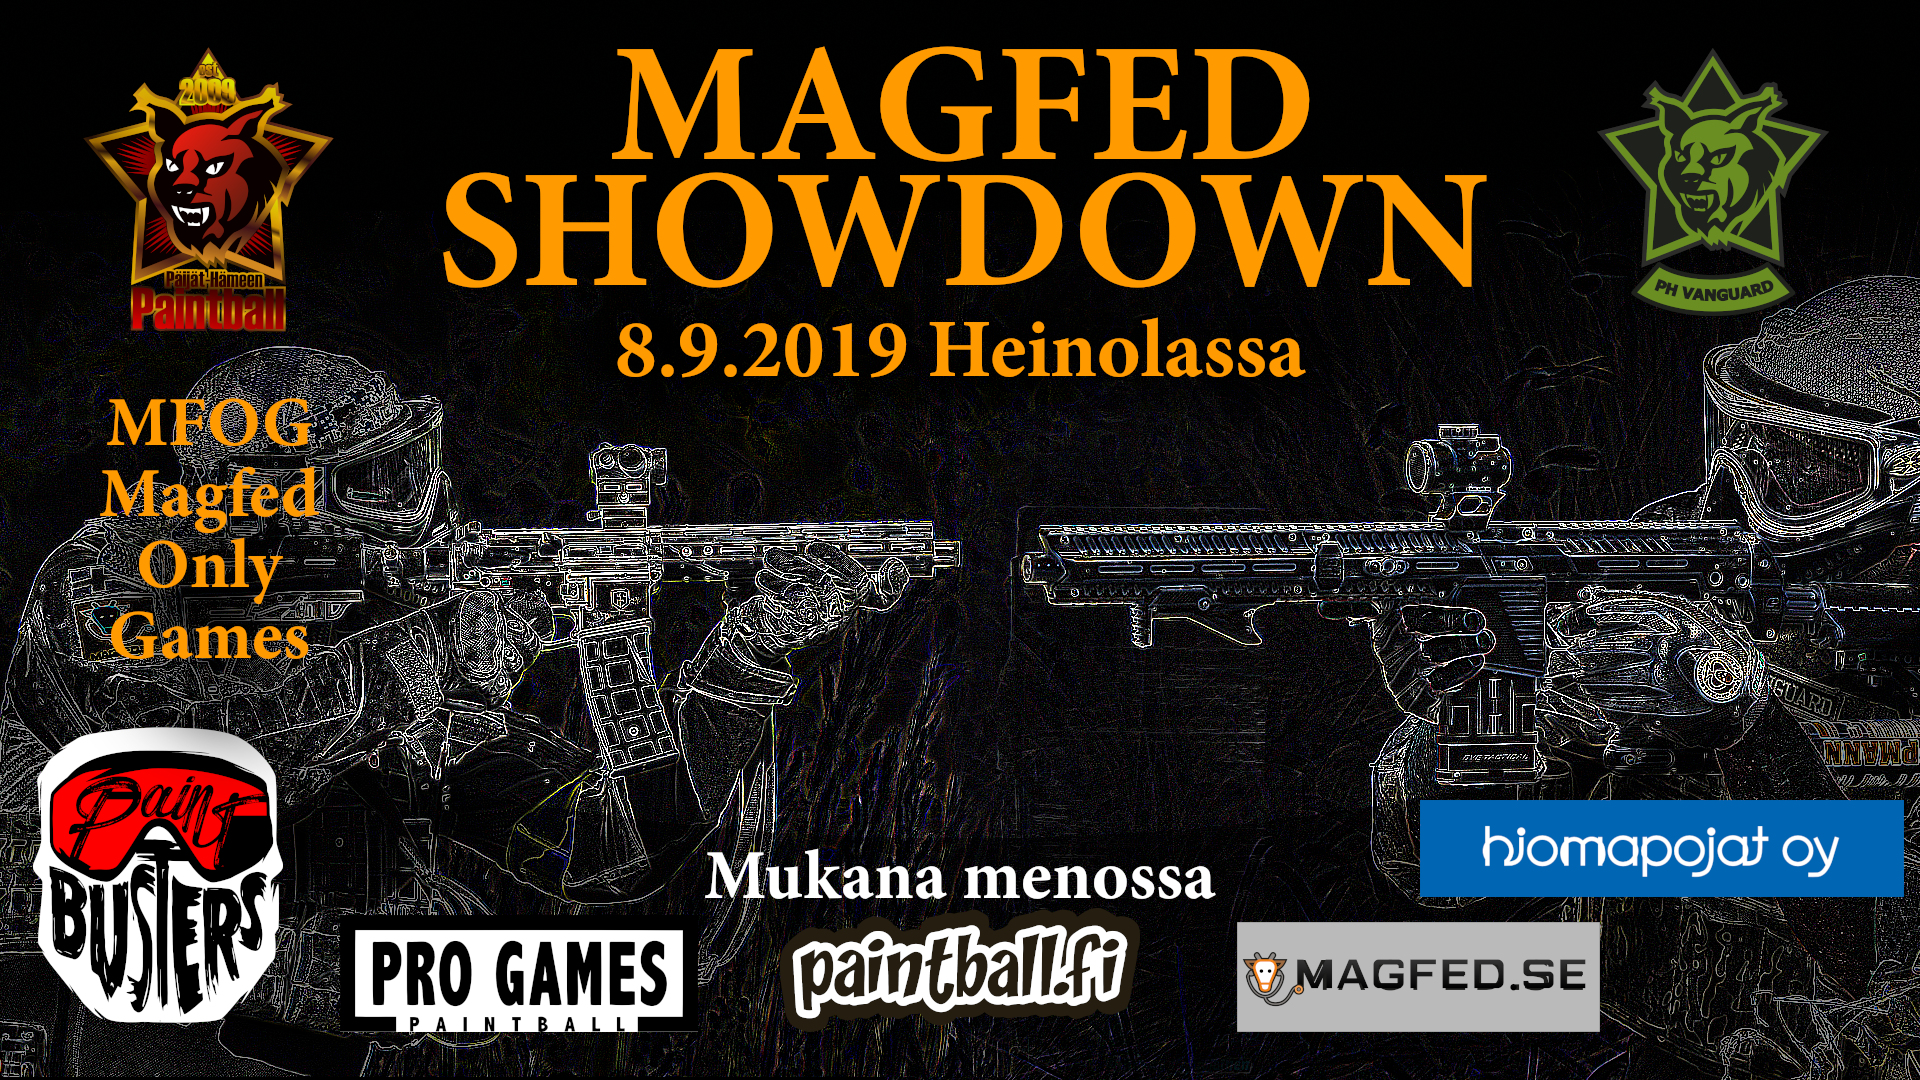 magfedshowdown_2019_2.jpg